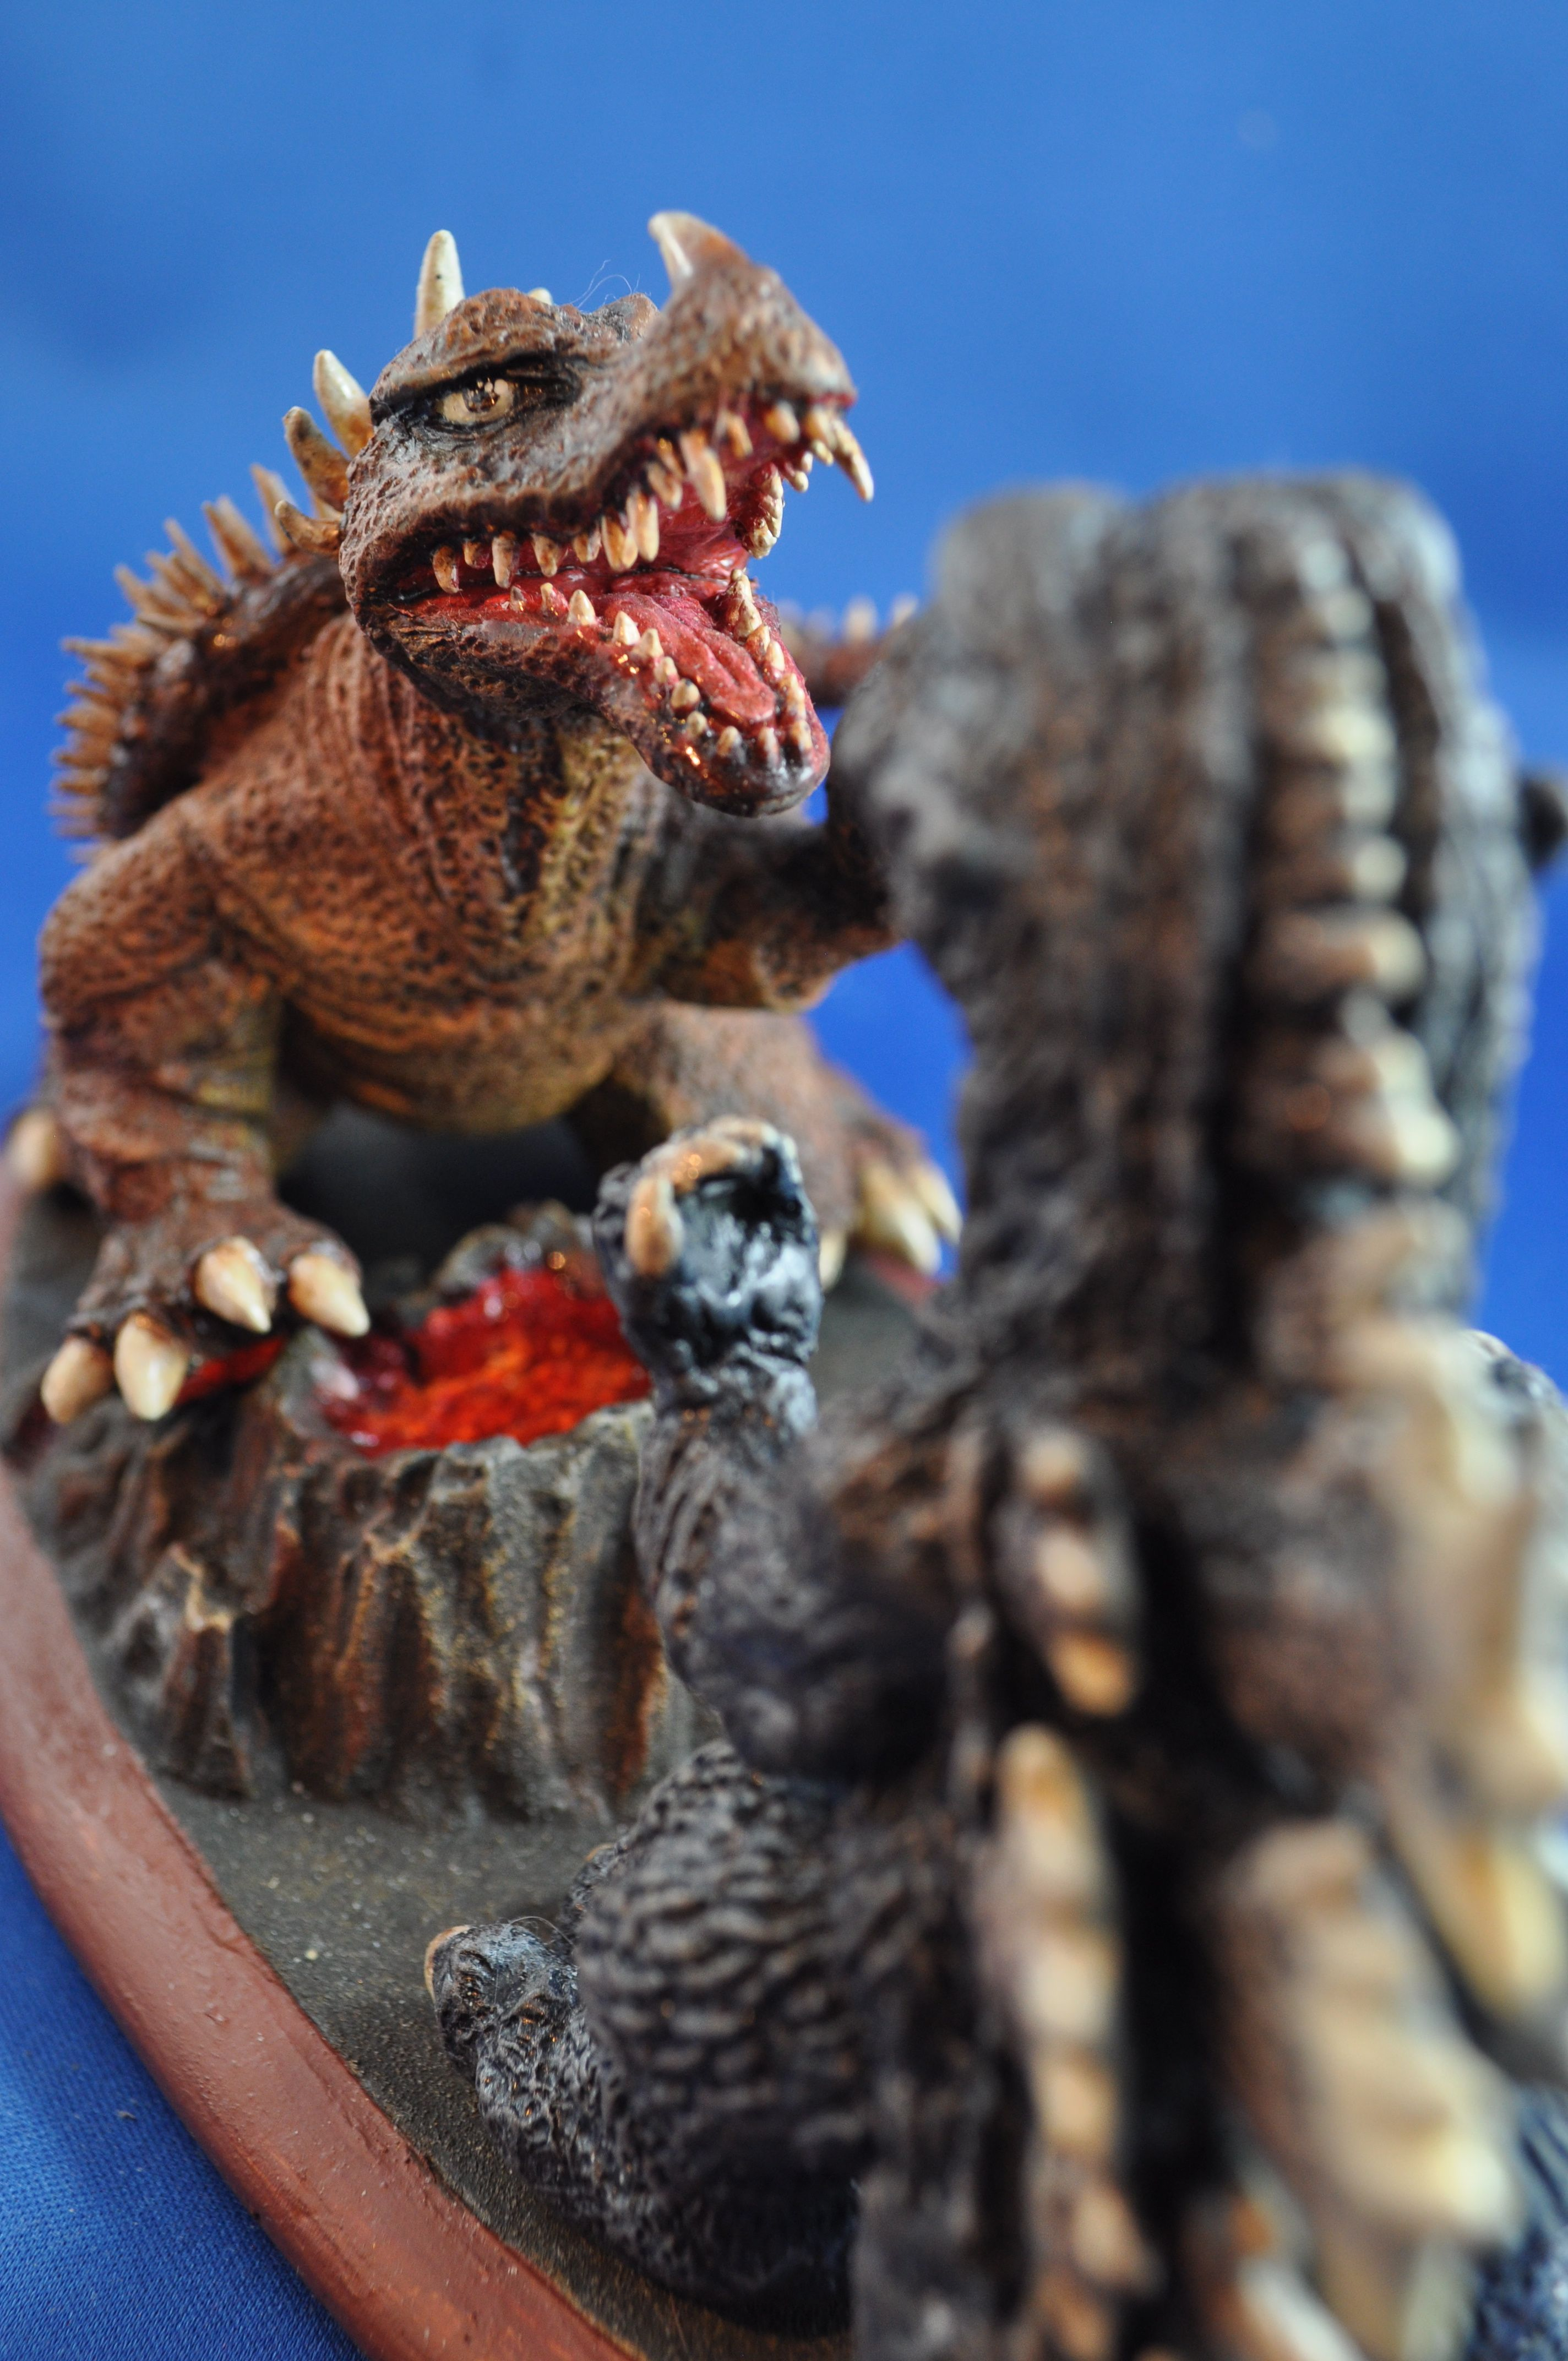 Anguirus lurches over the volcano for the kill.  It's fun to design dioramas for these SD kits.